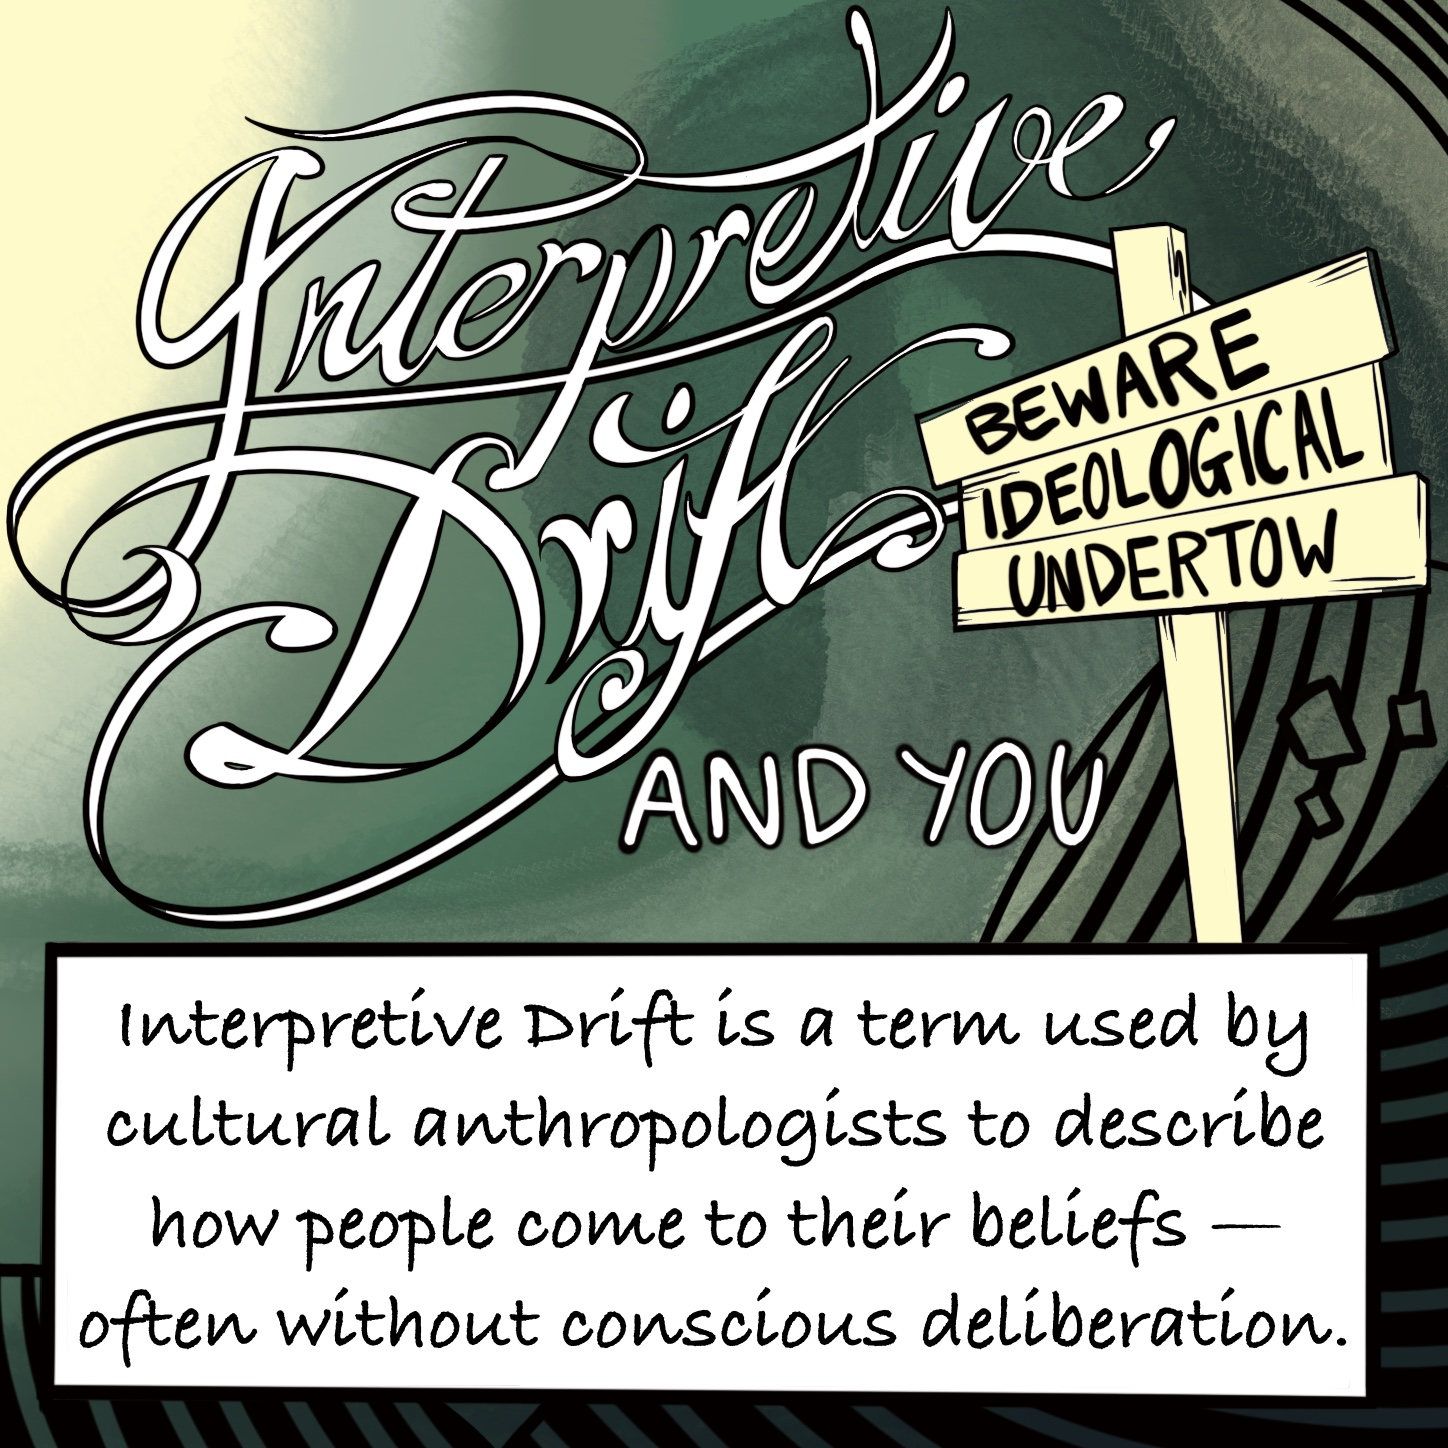 """Cursive writing spells """"Interpretative Drift"""" on a dark green decorative background with black lines and swirls followed by the words """"and you"""". To one side, a sign post warns """"Beware Ideological Undertow"""". A white box overlays the image with the words """"Interpretive Drift is a term used by cultural anthropologists to describe how people come to their beliefs - often without conscious deliberation""""."""